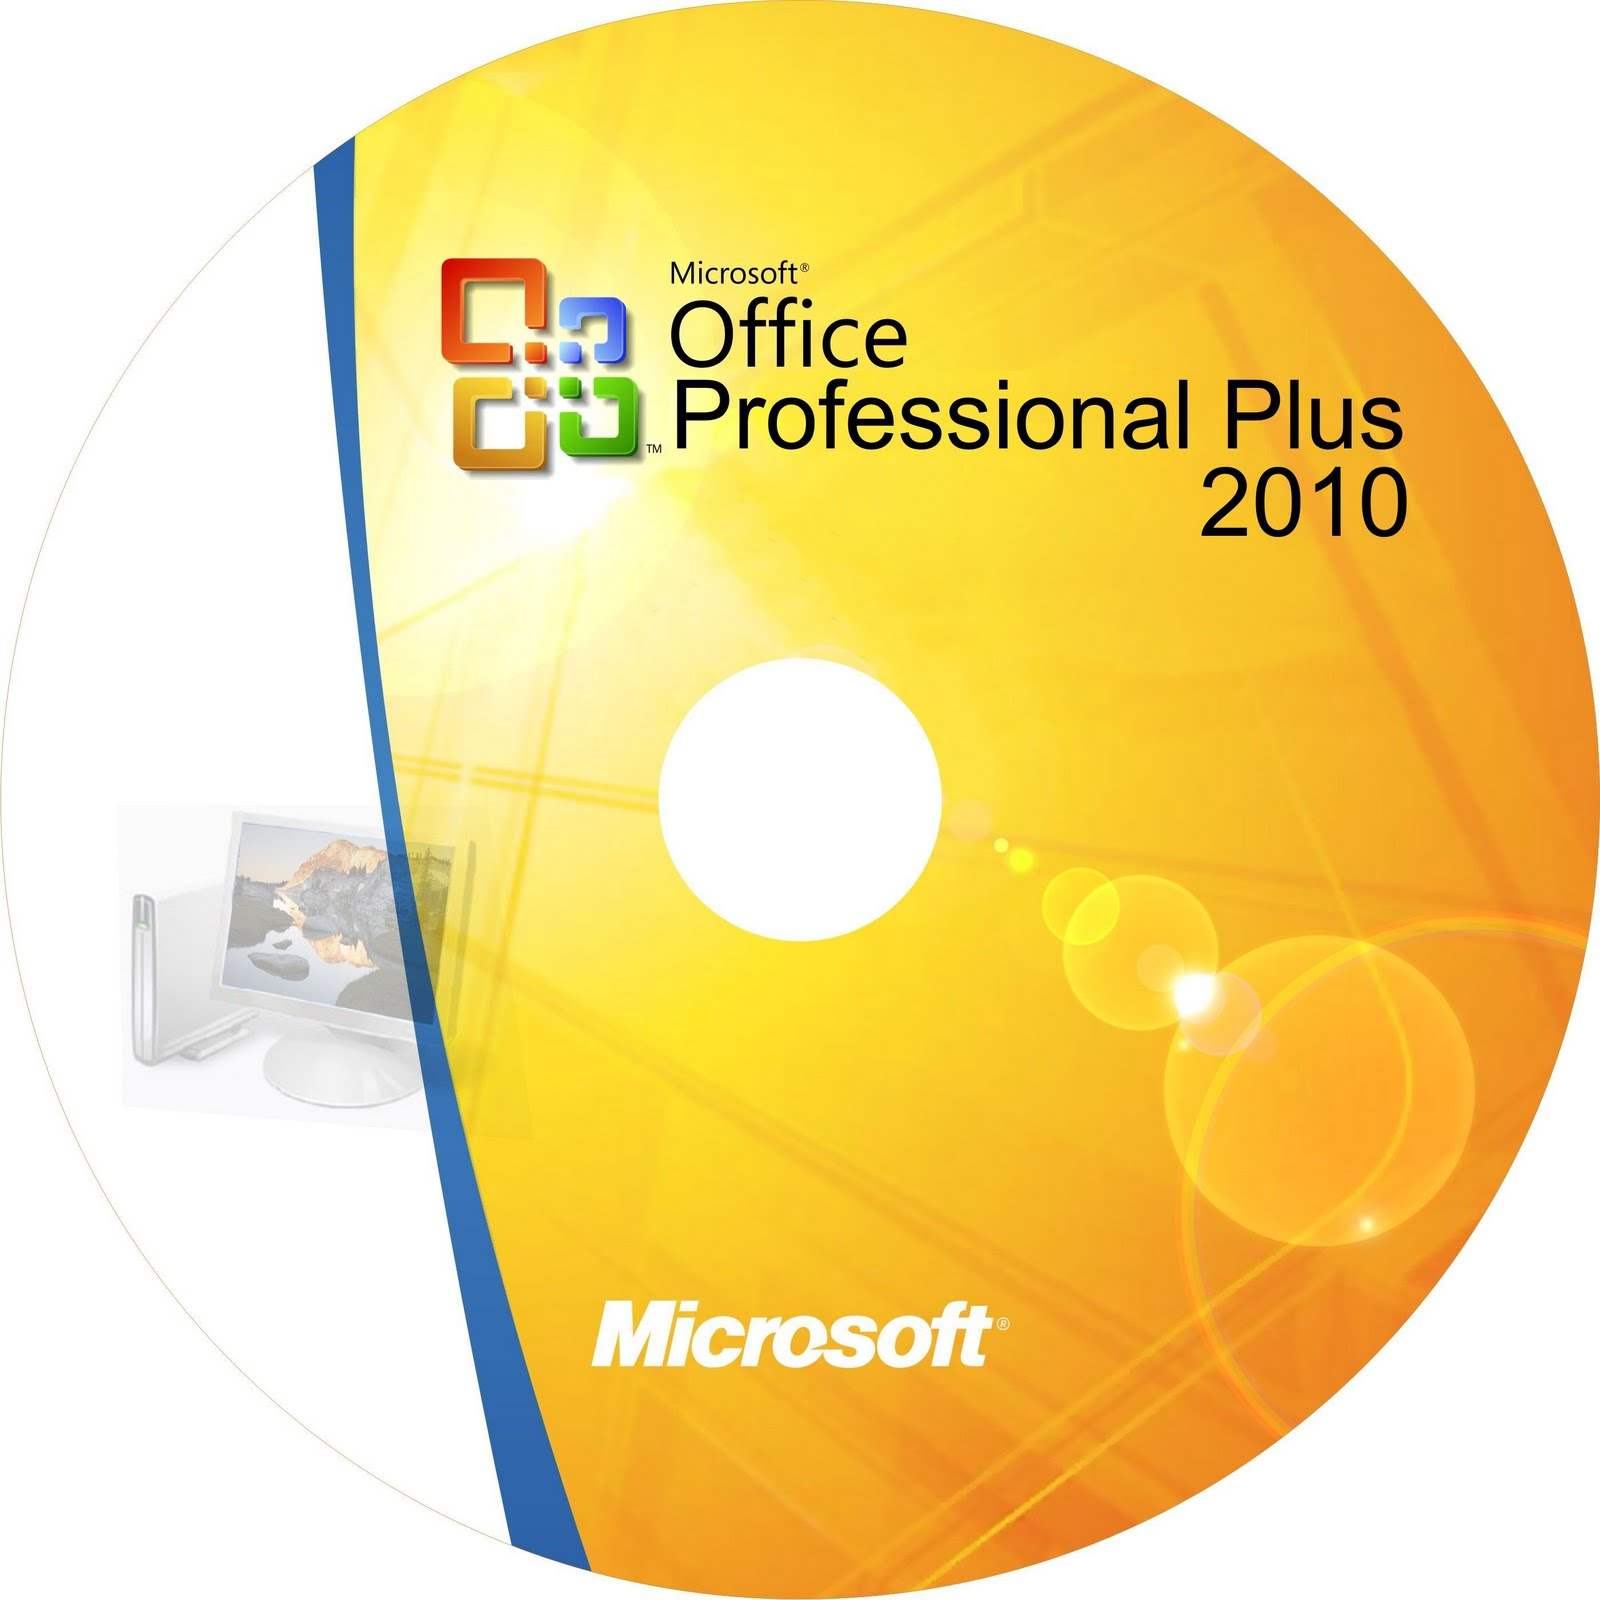 Microsoft Office ProPluS 2010 SP2 VL x64 en-US May2014